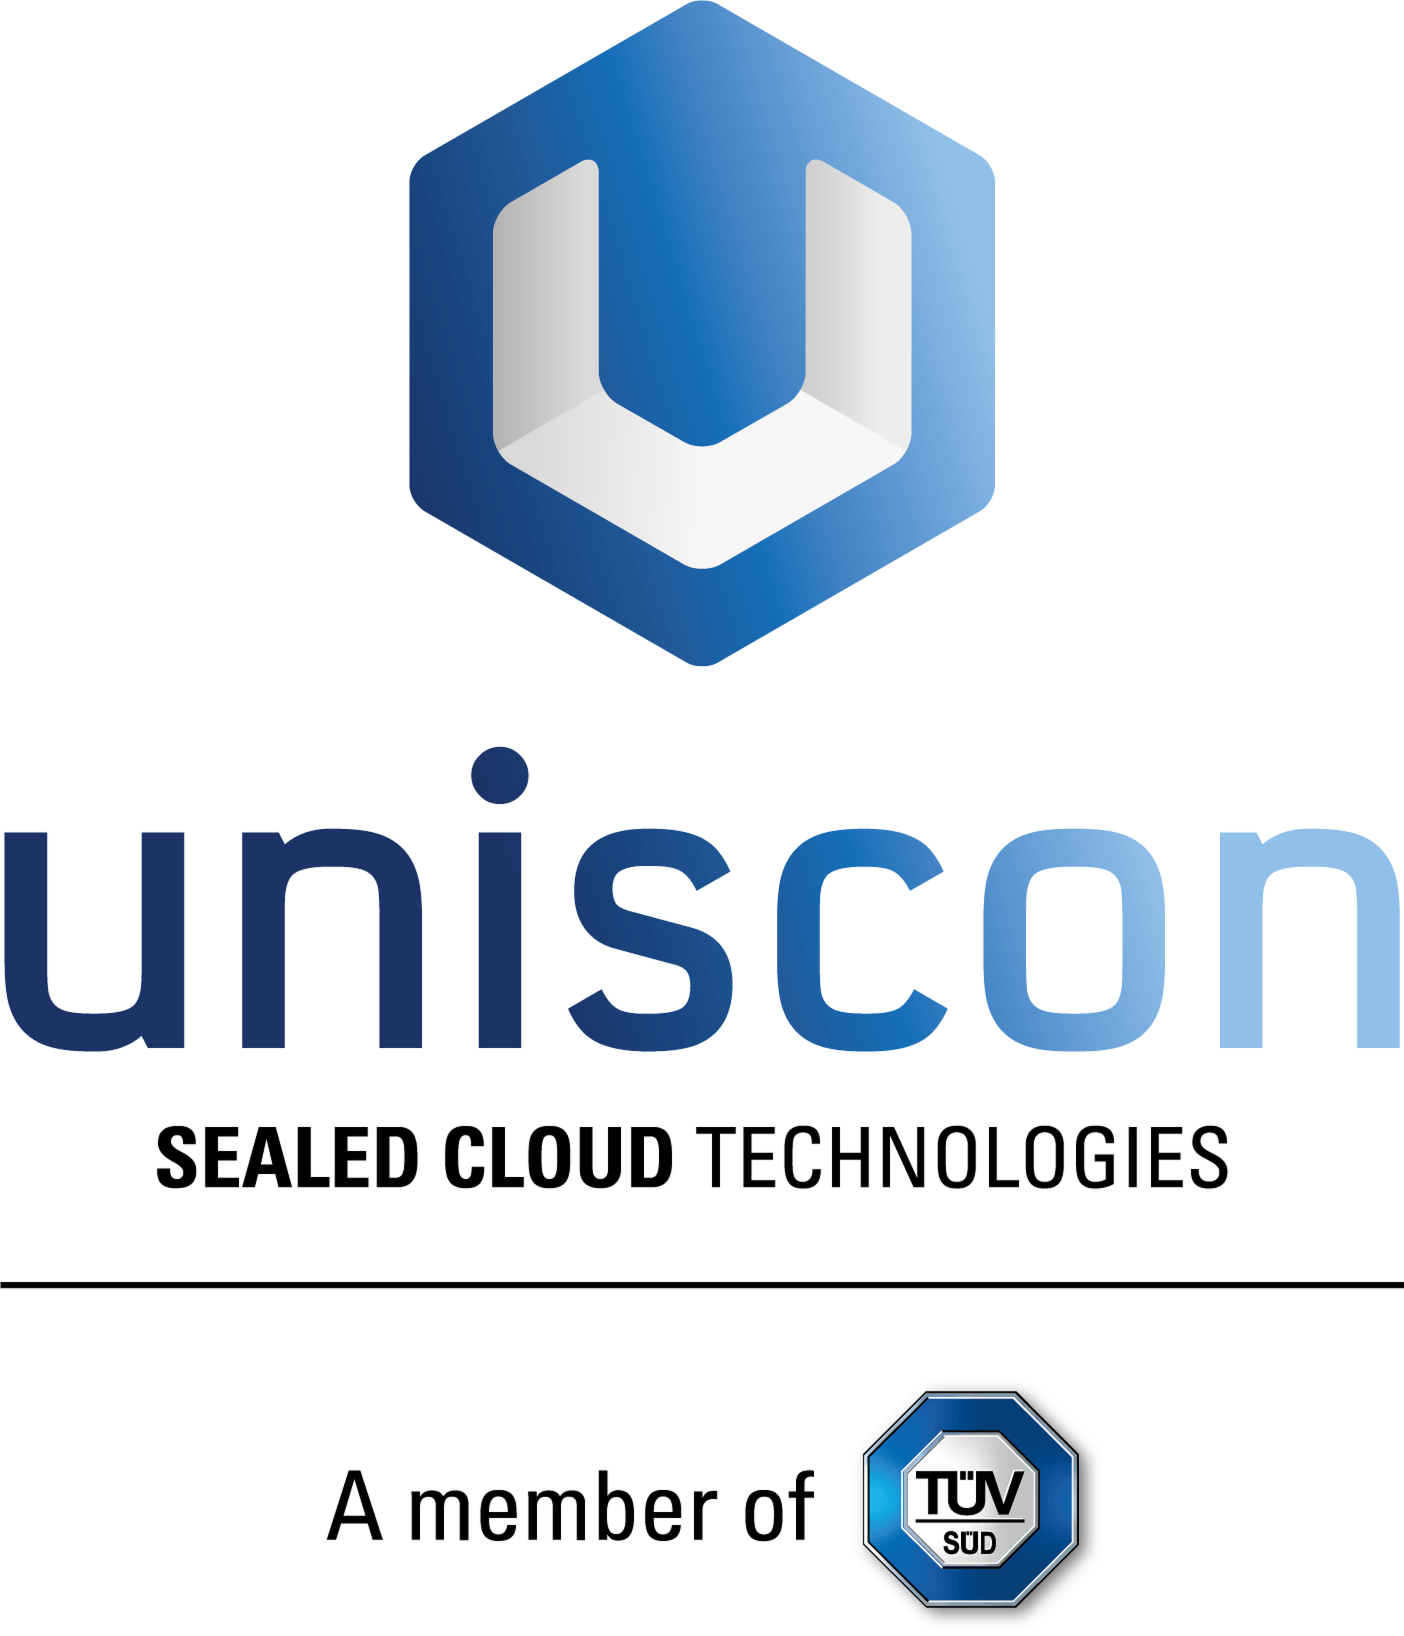 Exhibitor Press Releases - Cloud & Cyber Security 2020